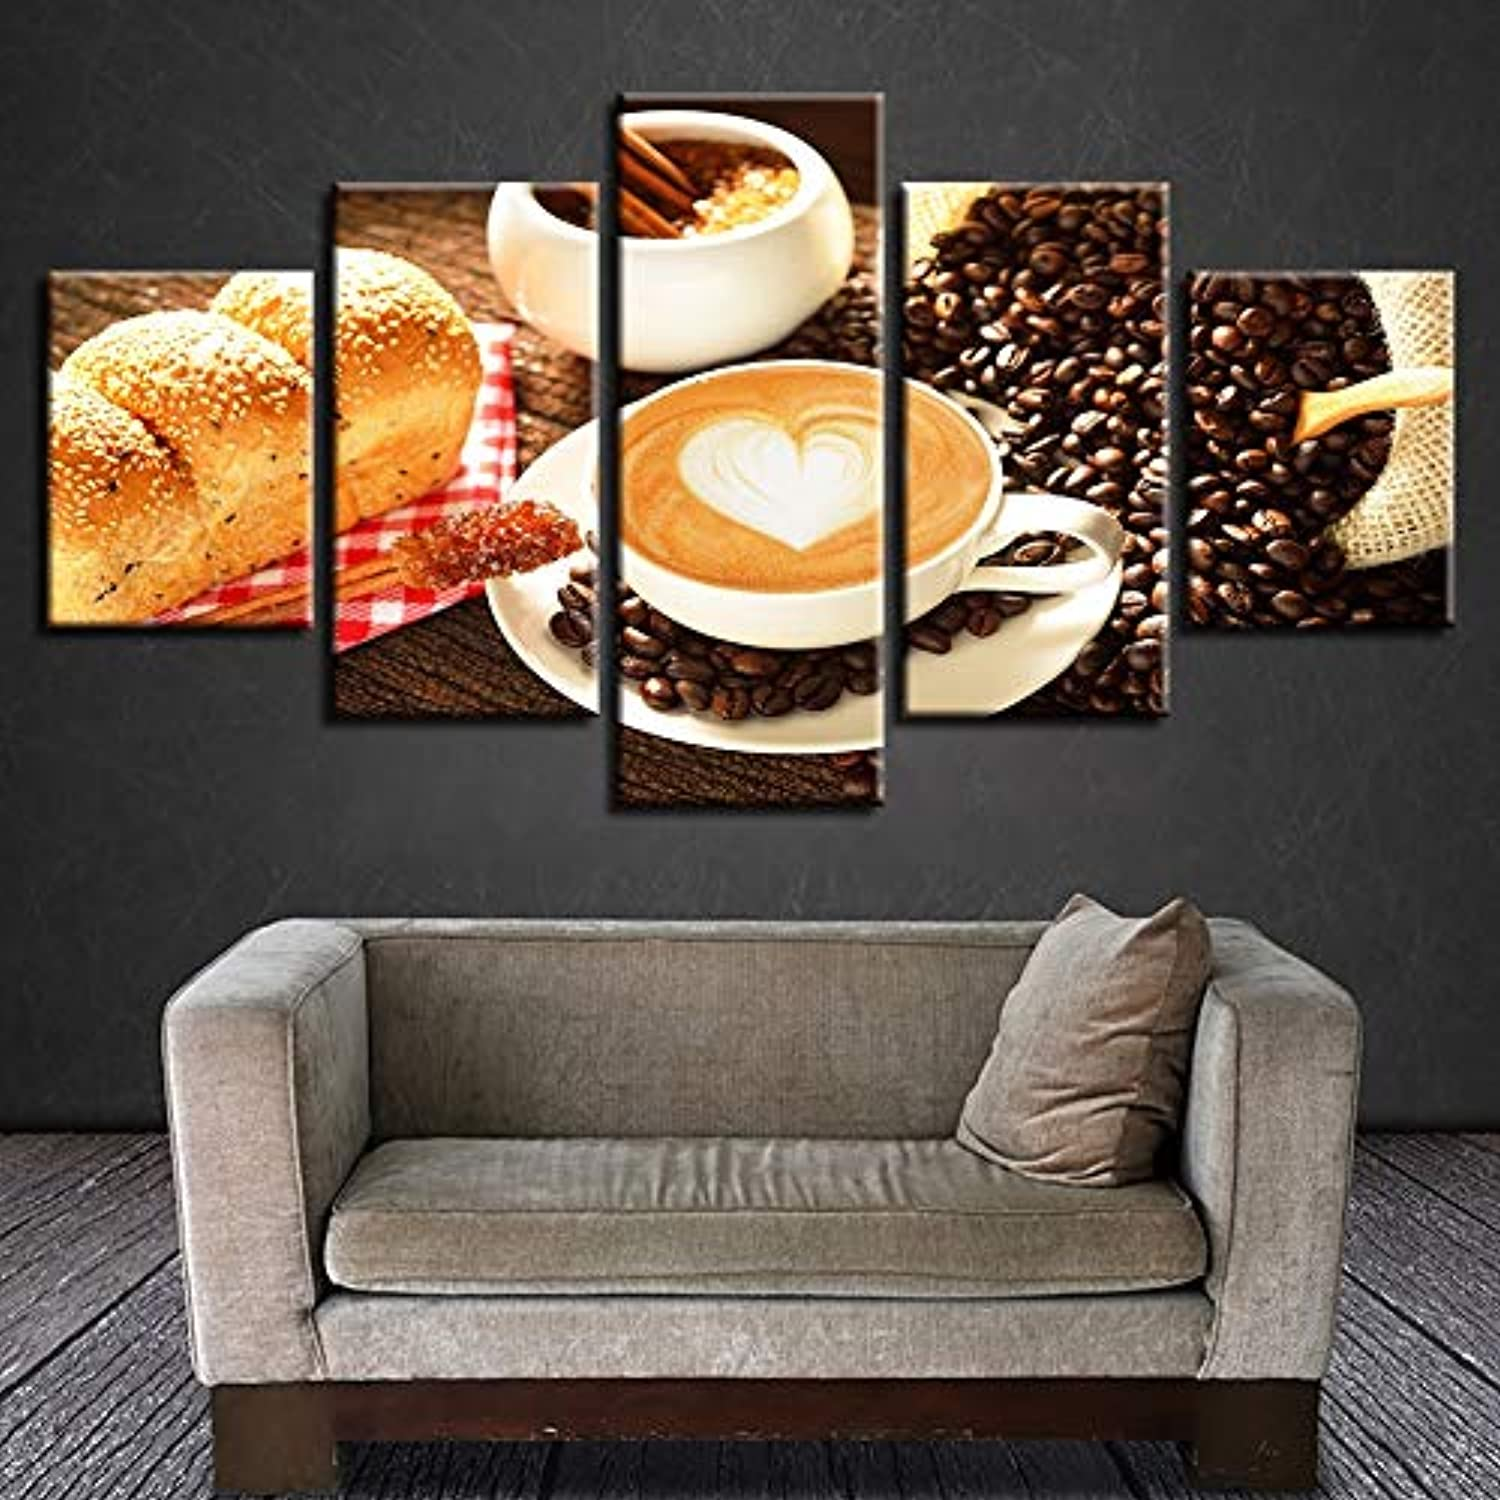 Wall Art Poster Modern Home Decor Living Room 5 Panel Coffee Bread Bedroom Canvas Print Painting Modular Picture Frame